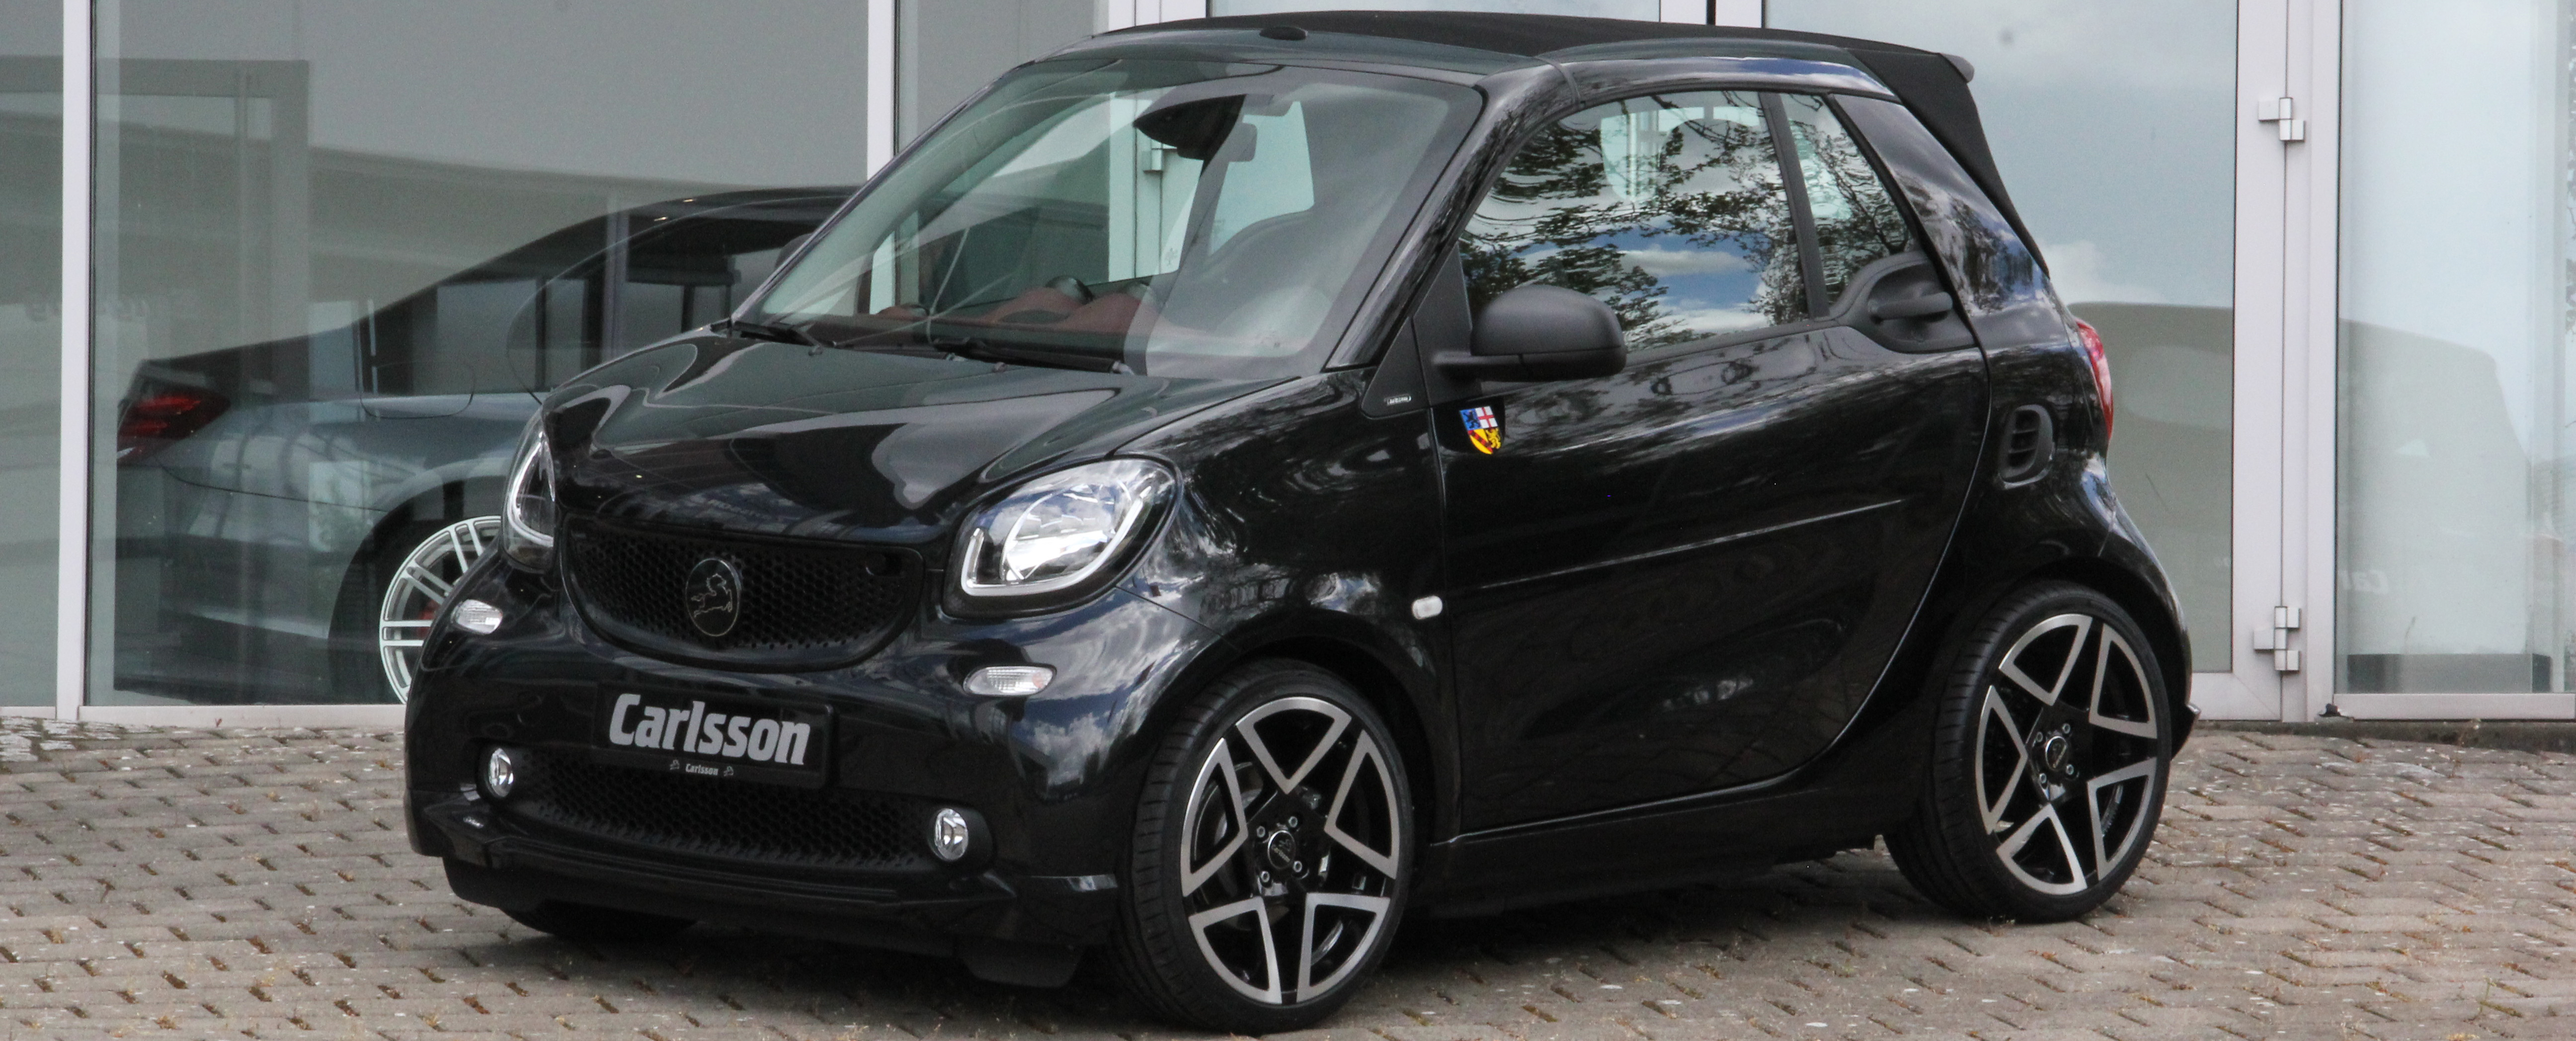 fortwo 453 mercedes benz fortwo 453 tuning wheels parts carlsson. Black Bedroom Furniture Sets. Home Design Ideas